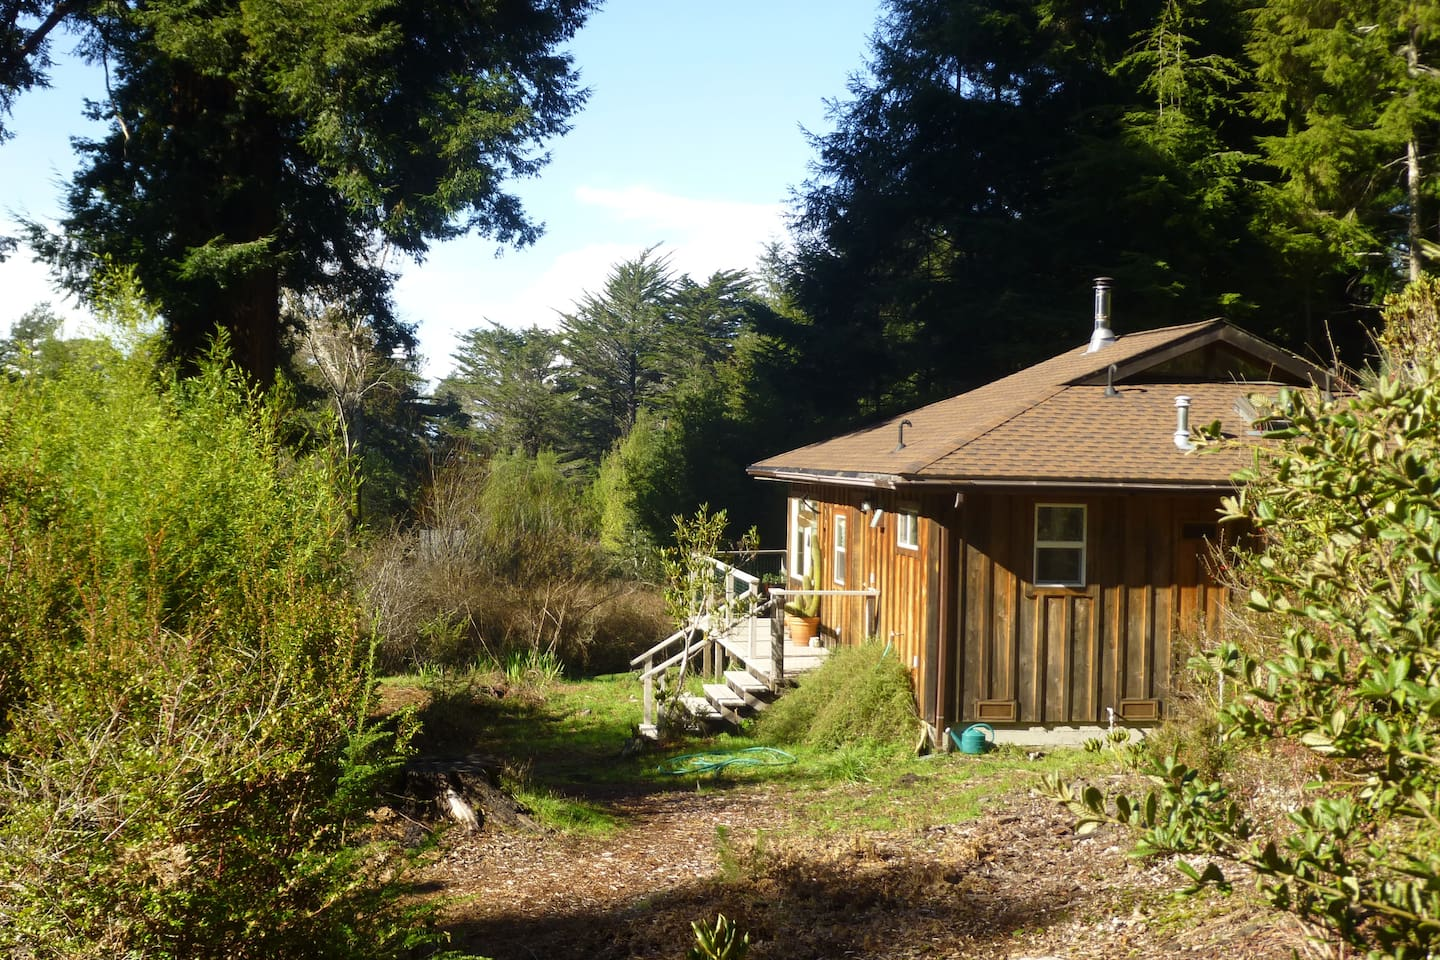 Sunny cottage amid redwoods and rhododendrons